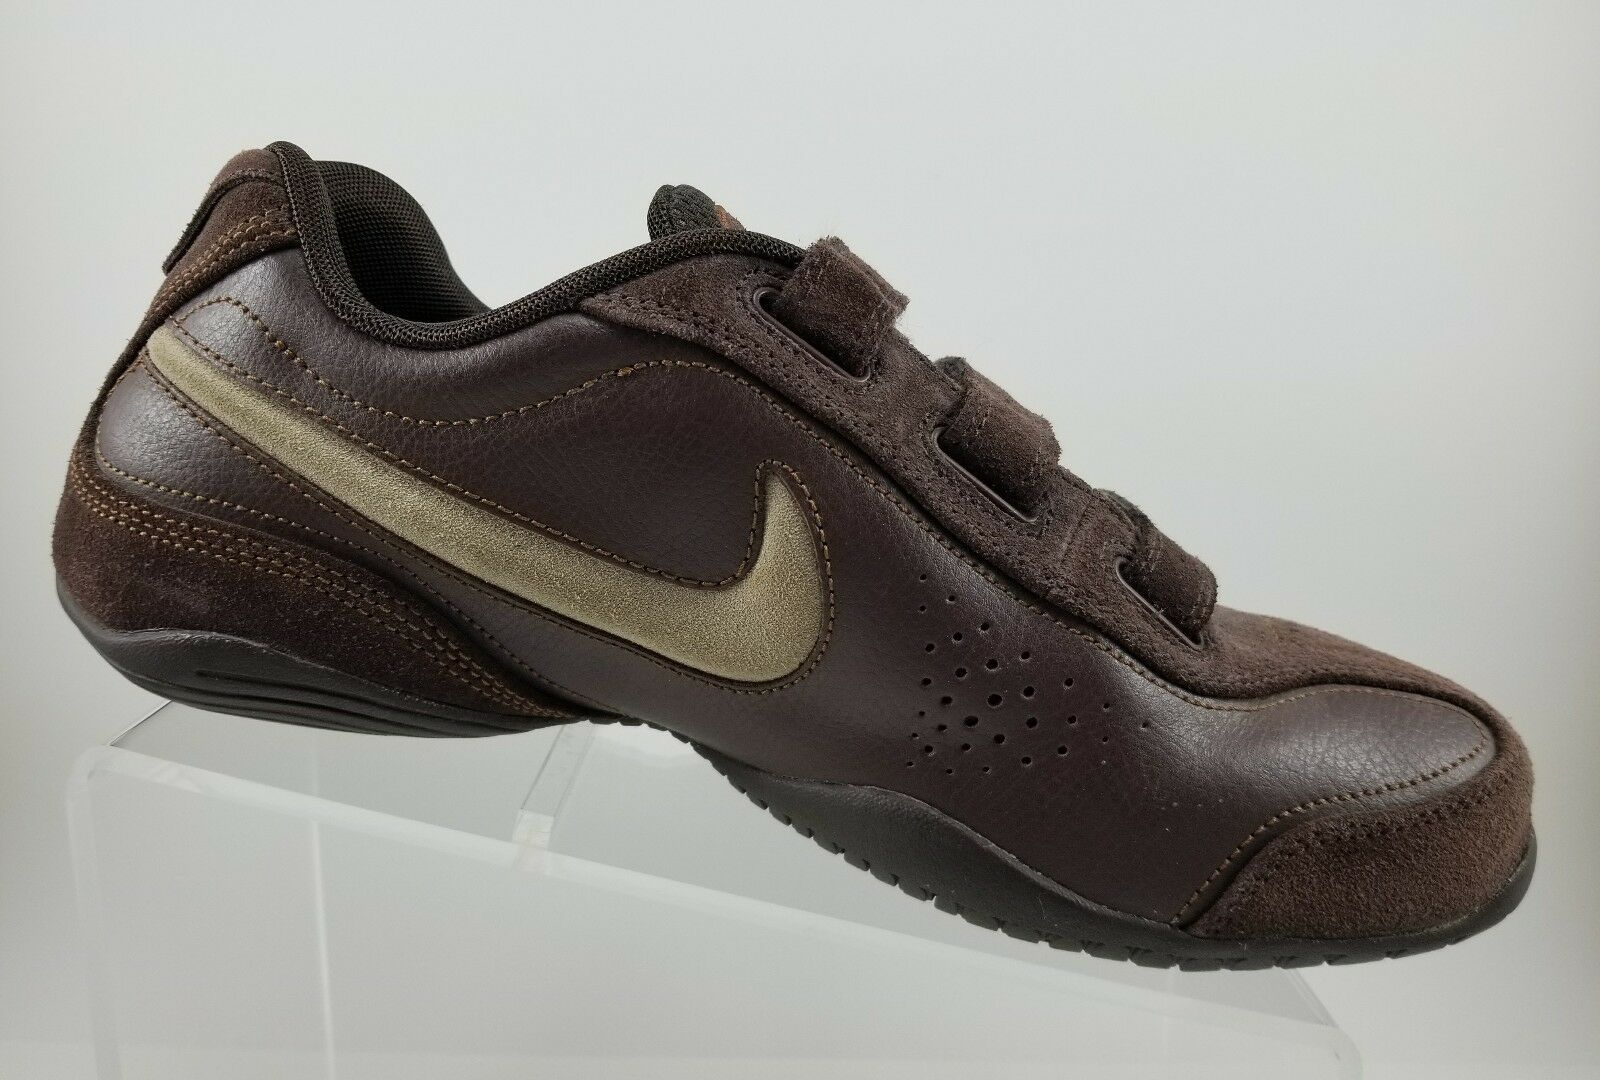 RARE Vintage Nike Air Series 6D V BrownThree Strap Strap Strap Athletic Sneakers  Mens 10B 178a3e